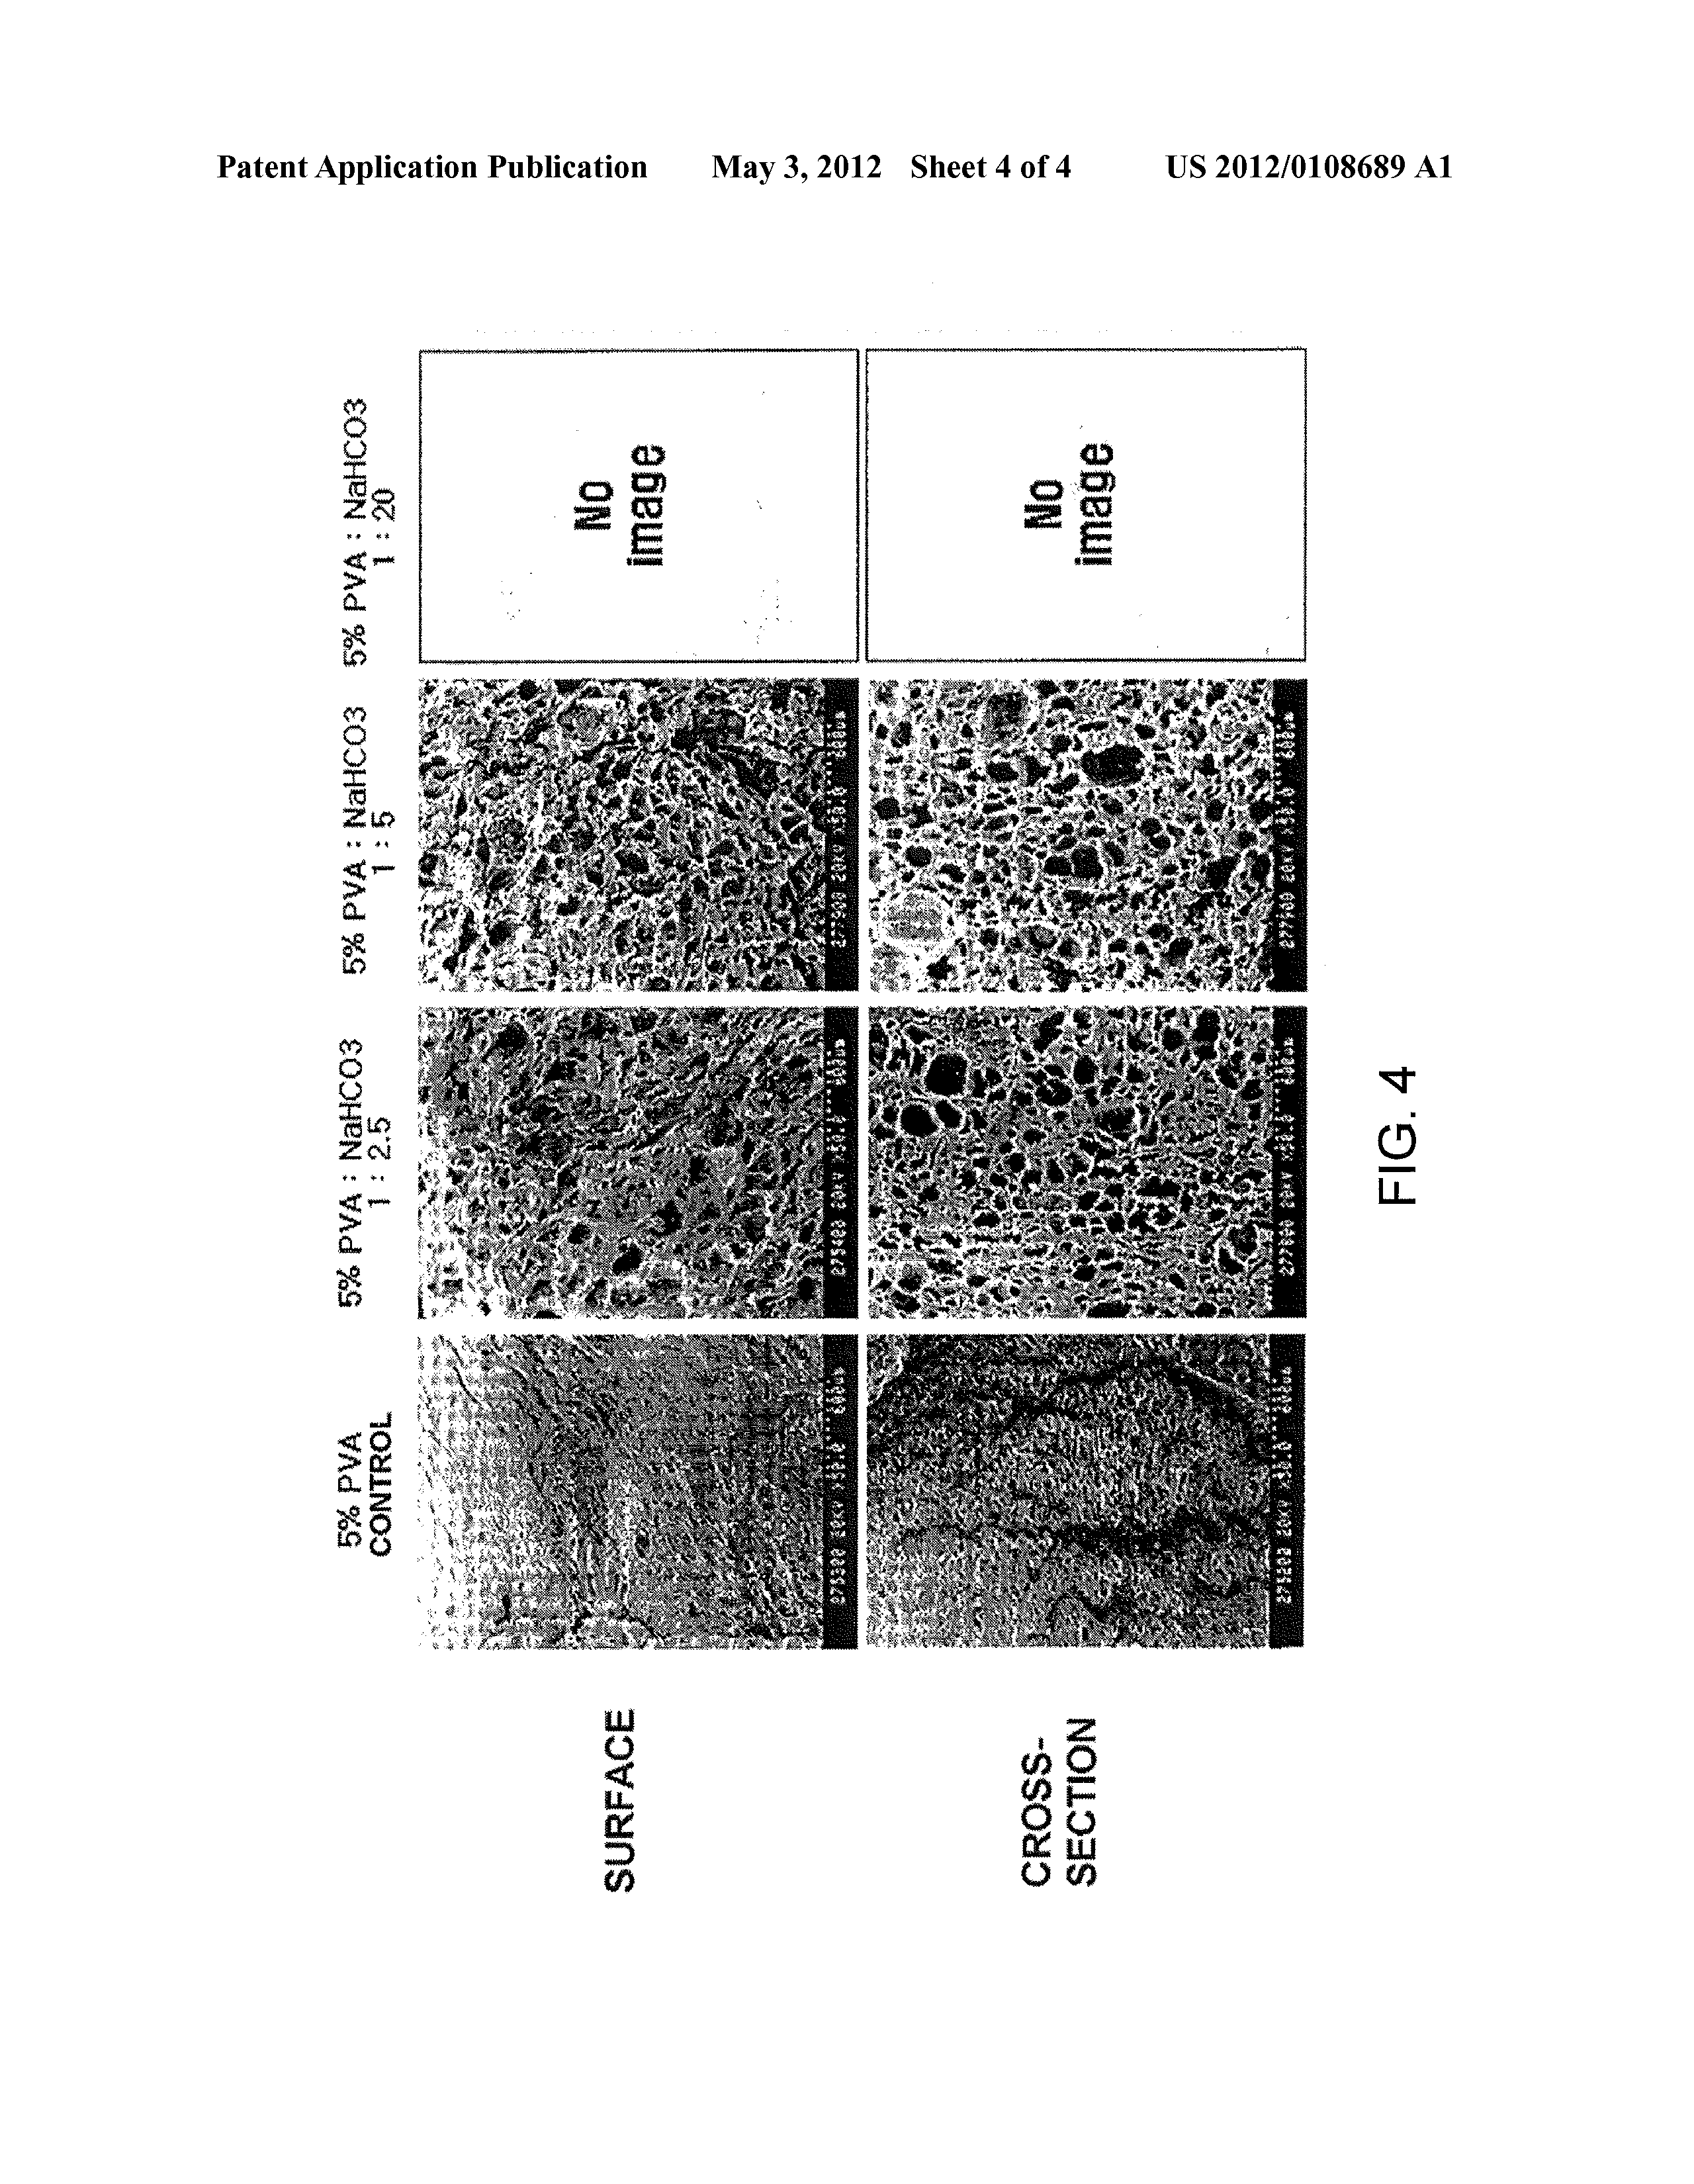 US 2012/0108689 A1 - Process For Forming A Porous Pva